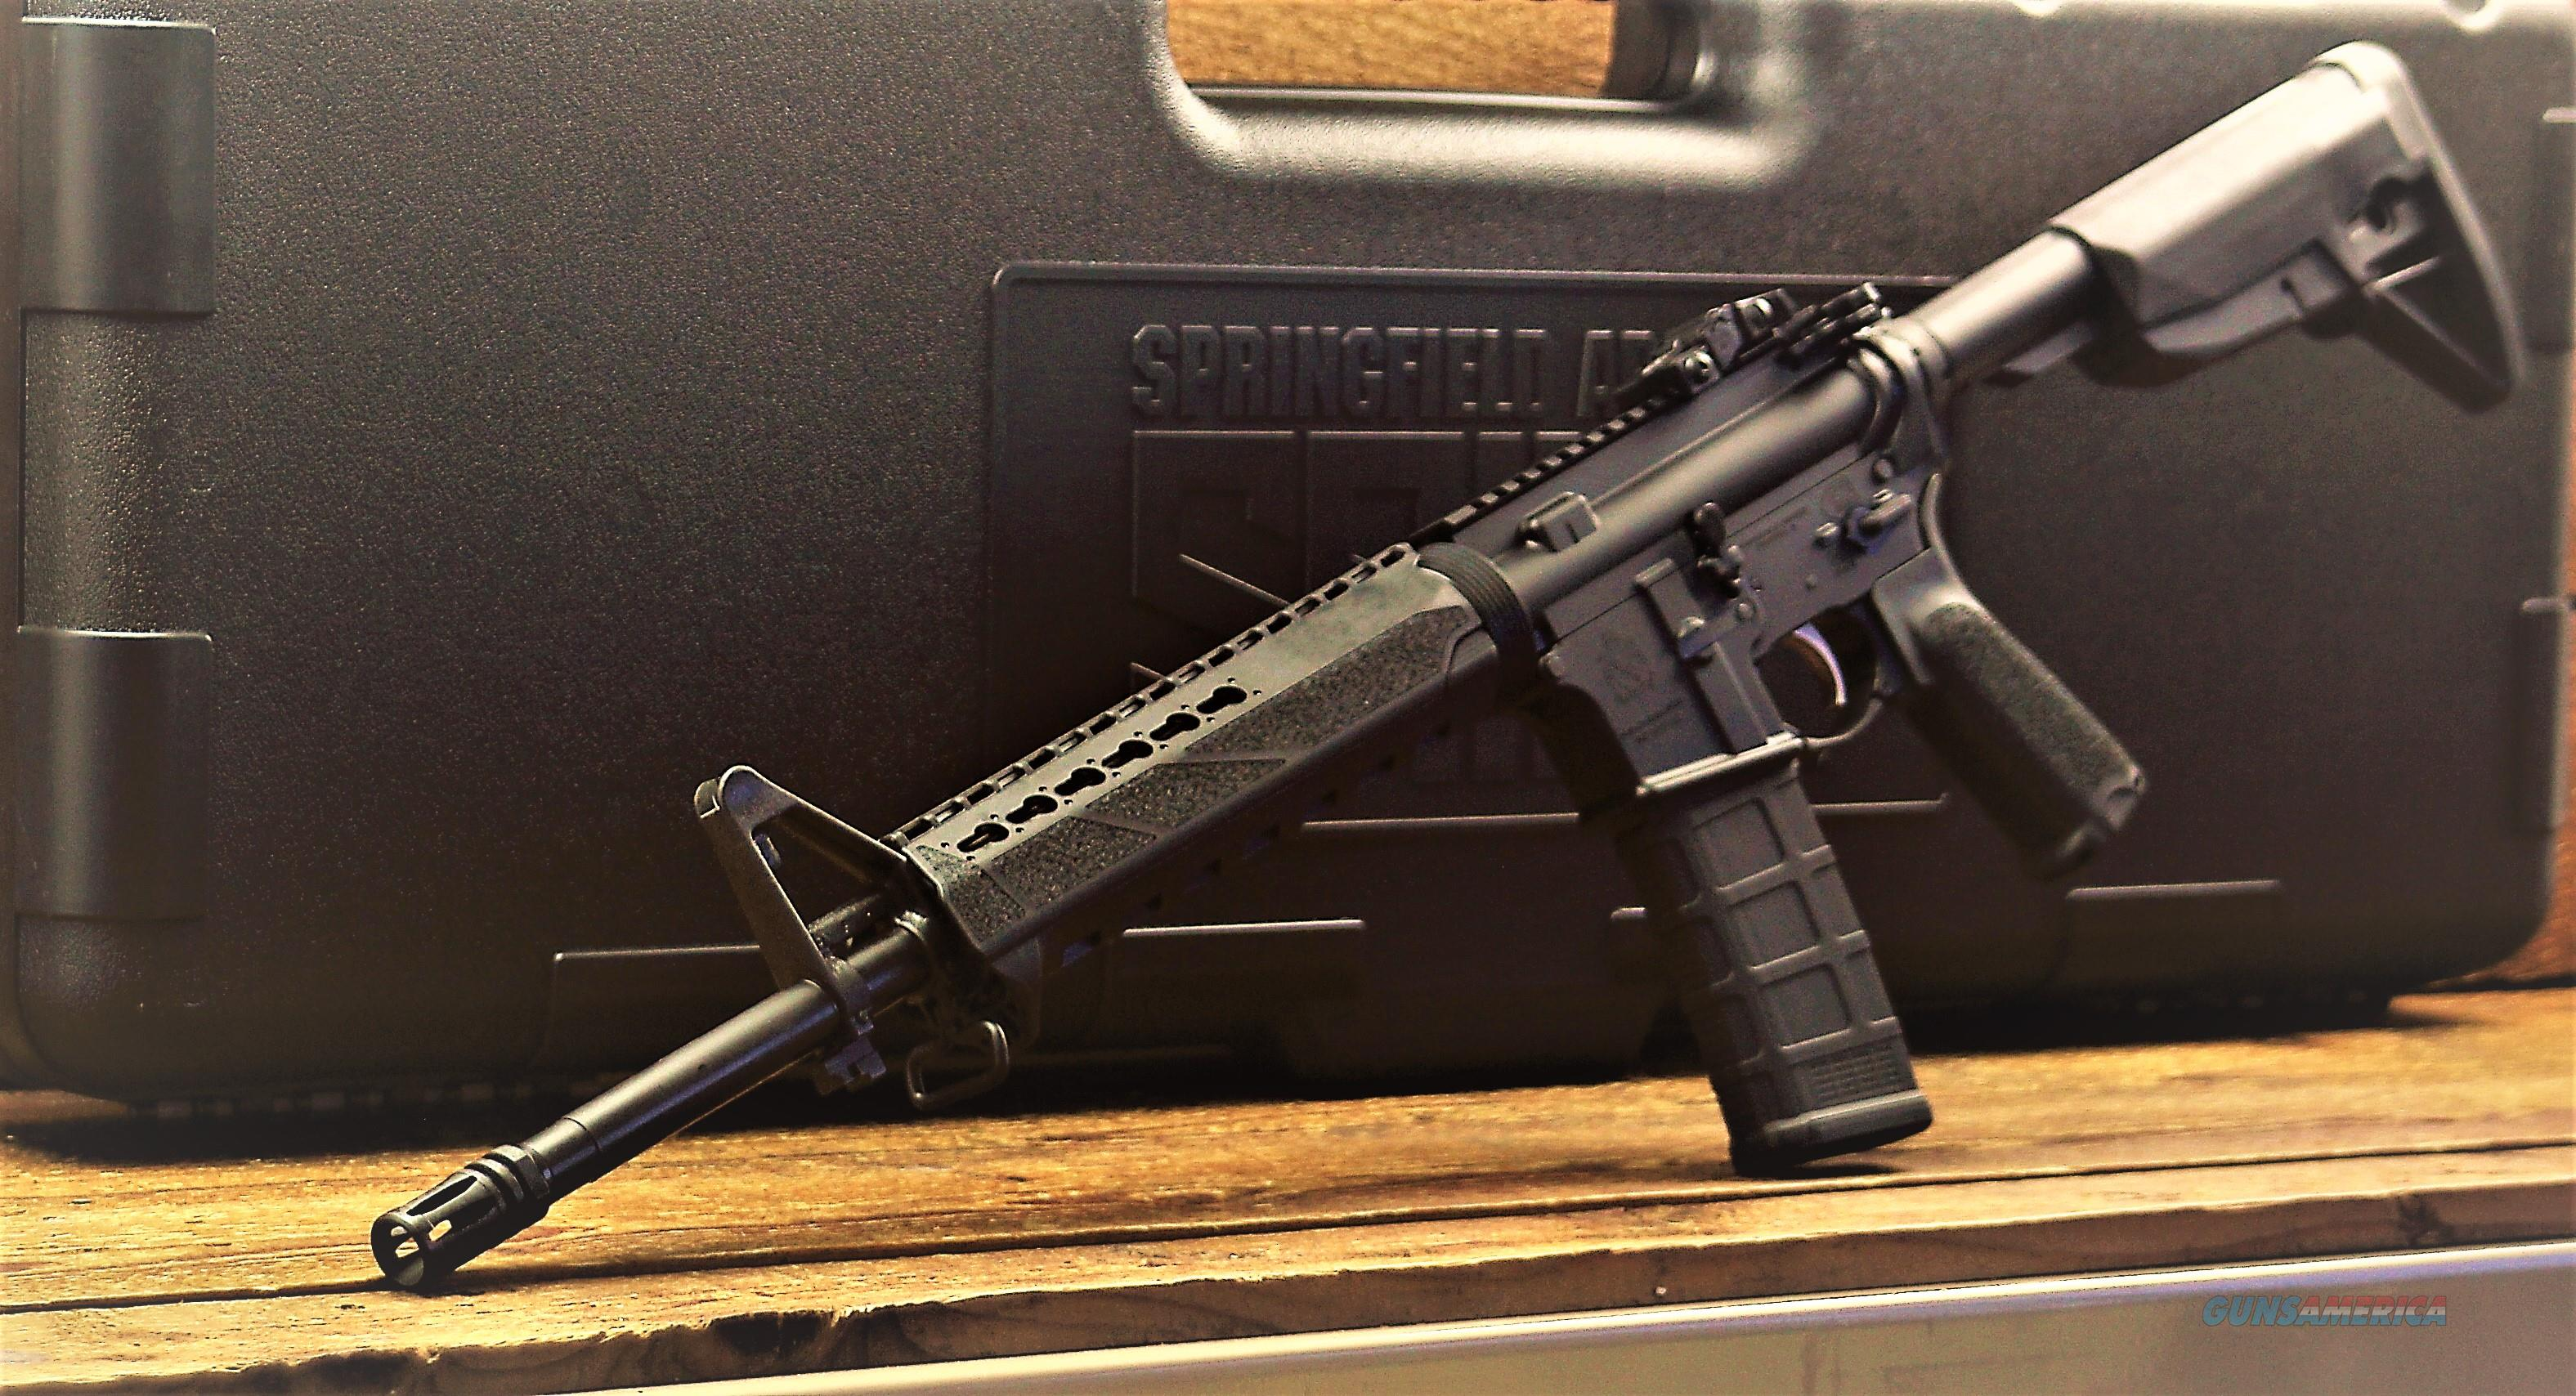 EASY PAY $74  DOWN LAYAWAY 12 MONTHLY  PAYMENTS Springfield Armory  Saint ST916556B TACTICAL ar-15 m-4 m4 ar15 6-Position stock   Guns > Rifles > Springfield Armory Rifles > SAINT